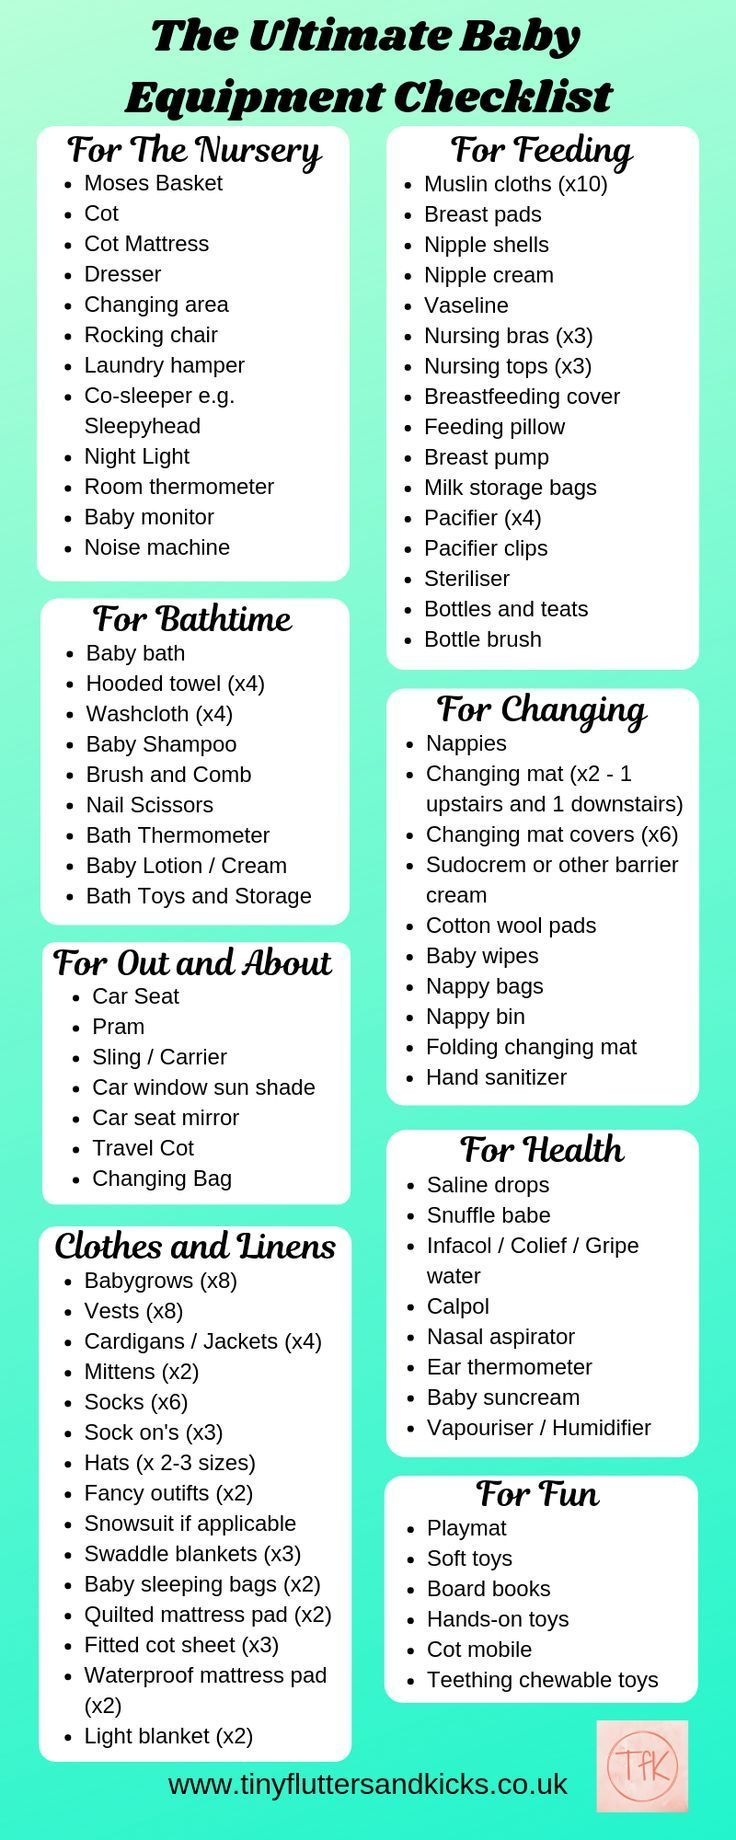 The Ultimate Baby Equipment Checklist Everything You Need To Prepare For Baby Baby Equipment Newba Baby Equipment Baby Checklist Baby Essential Checklist